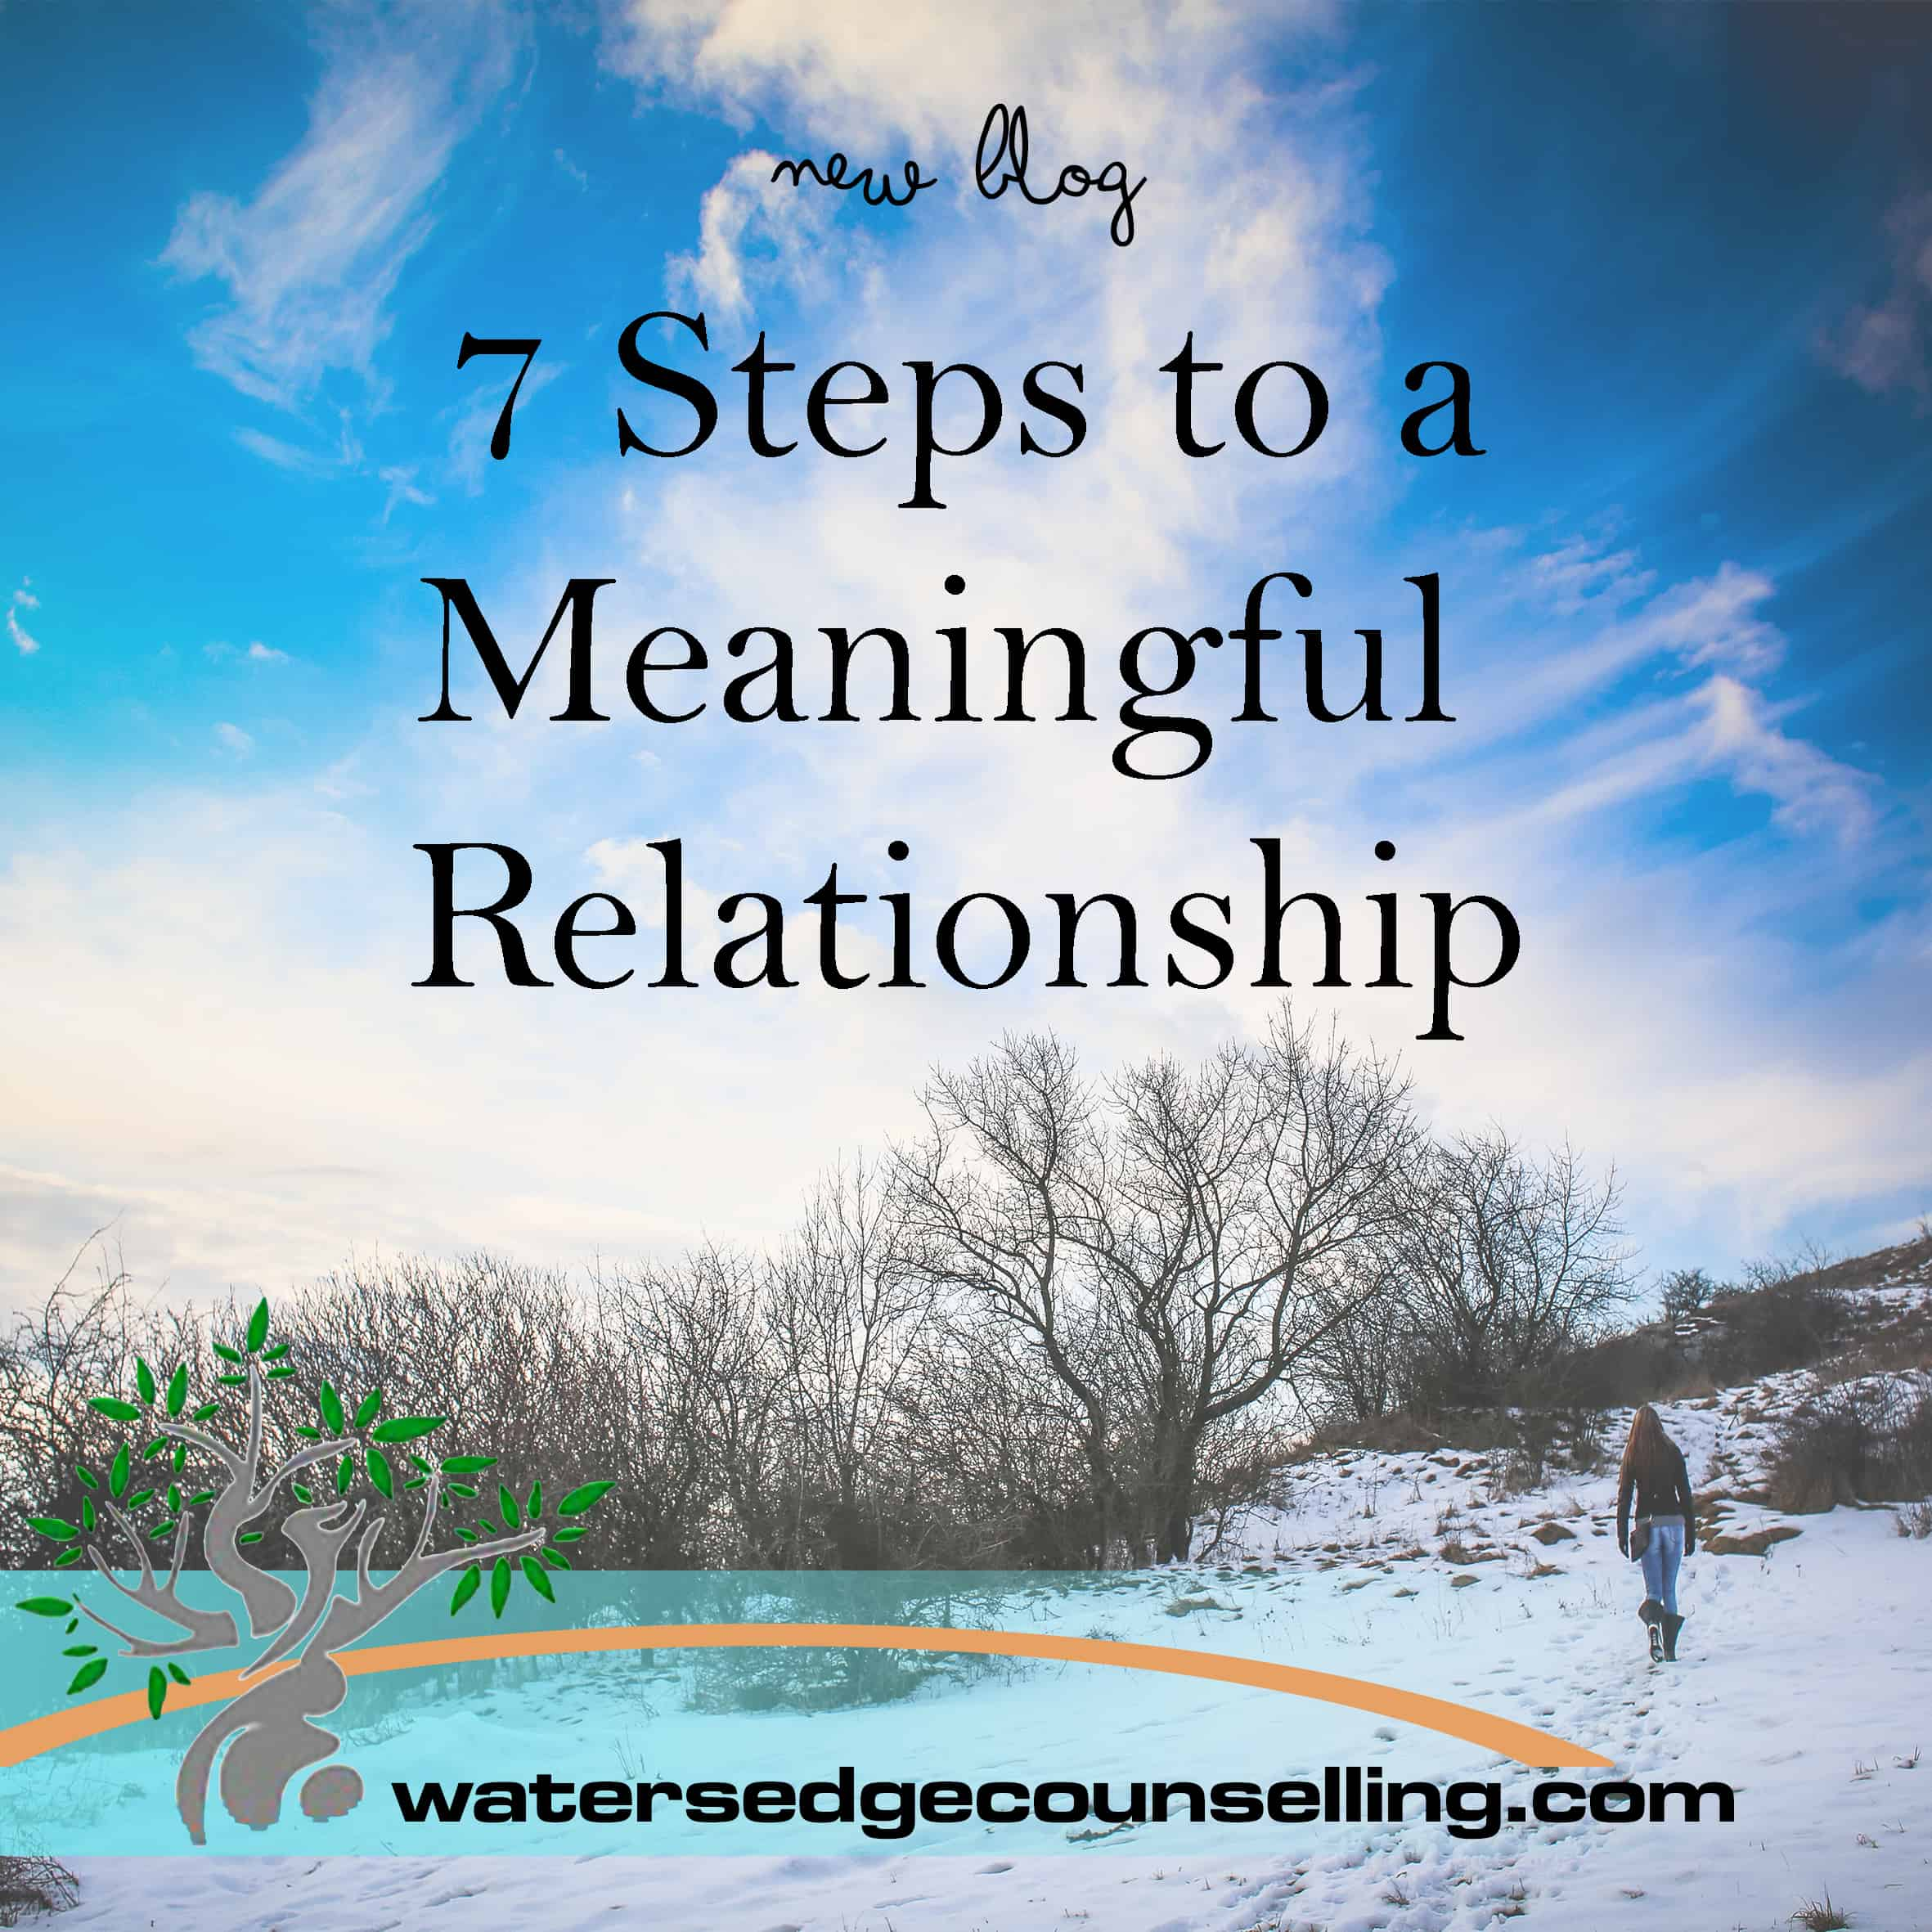 7 Steps to a Meaningful Relationship